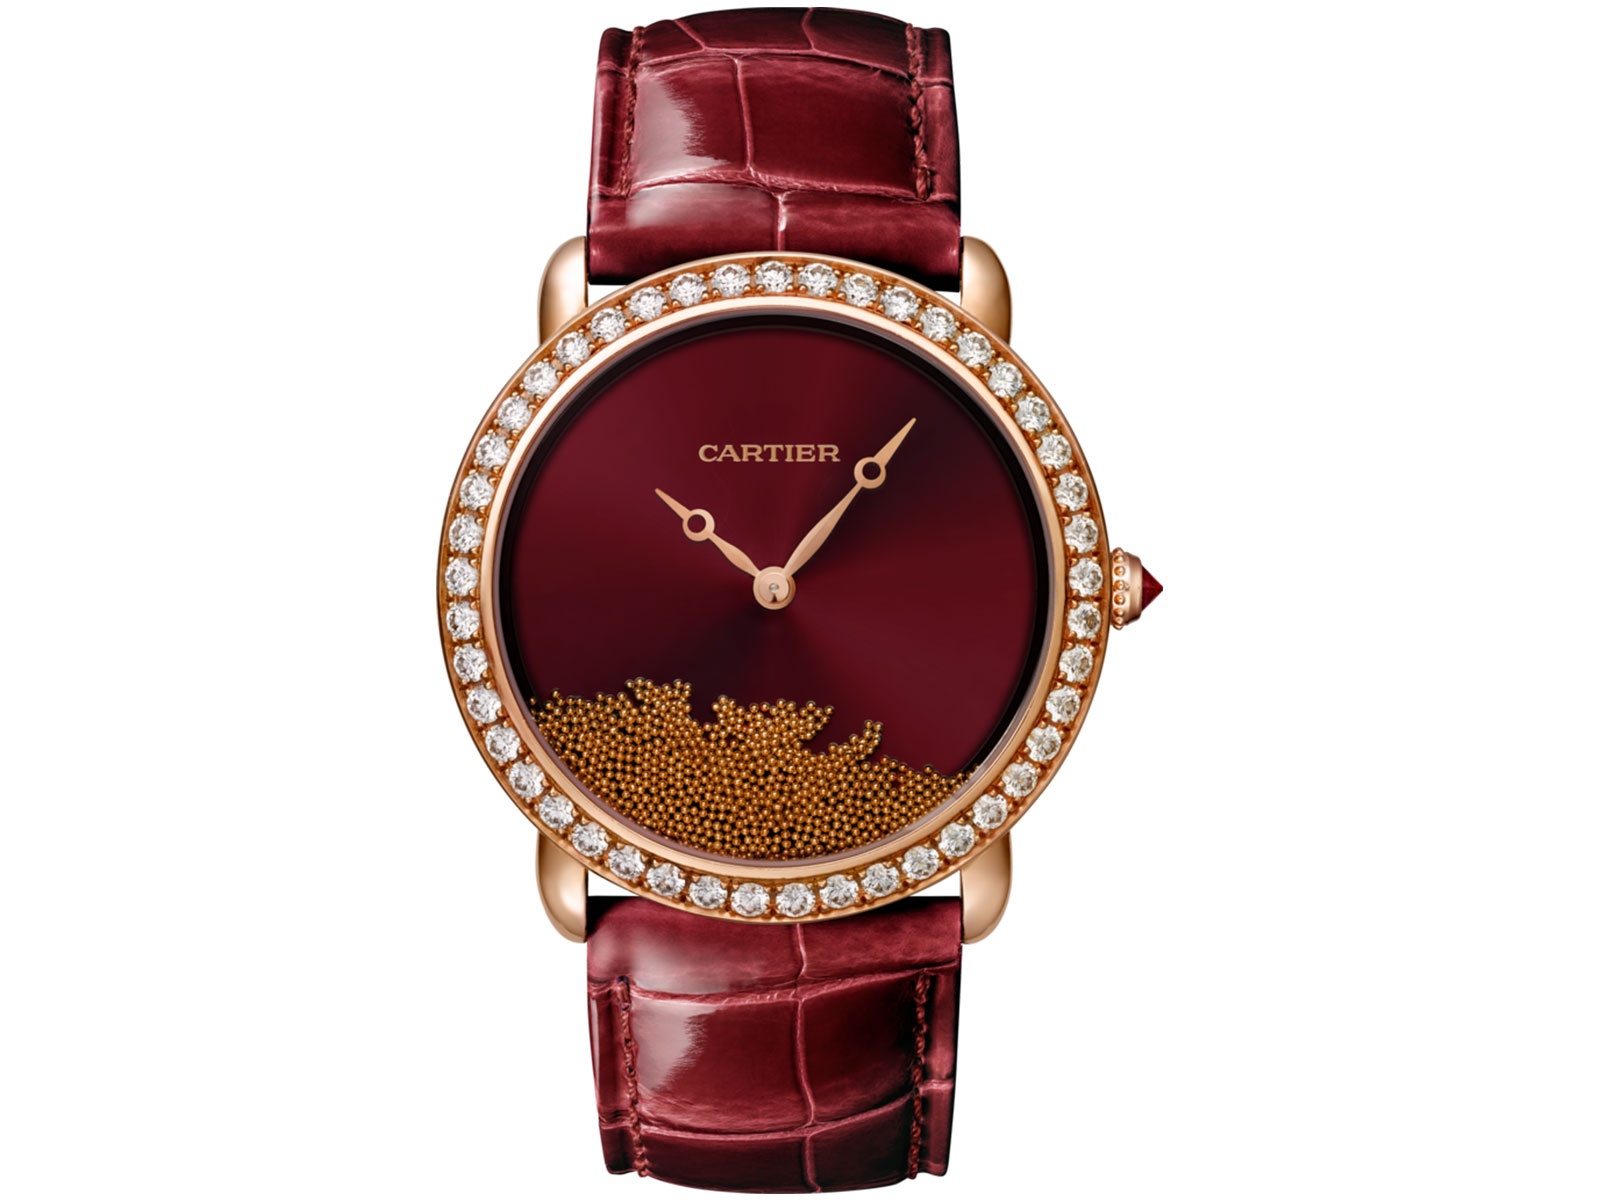 HP-01260-Cartier-Panthere-Collection-Sihh2018-Red-3.jpg